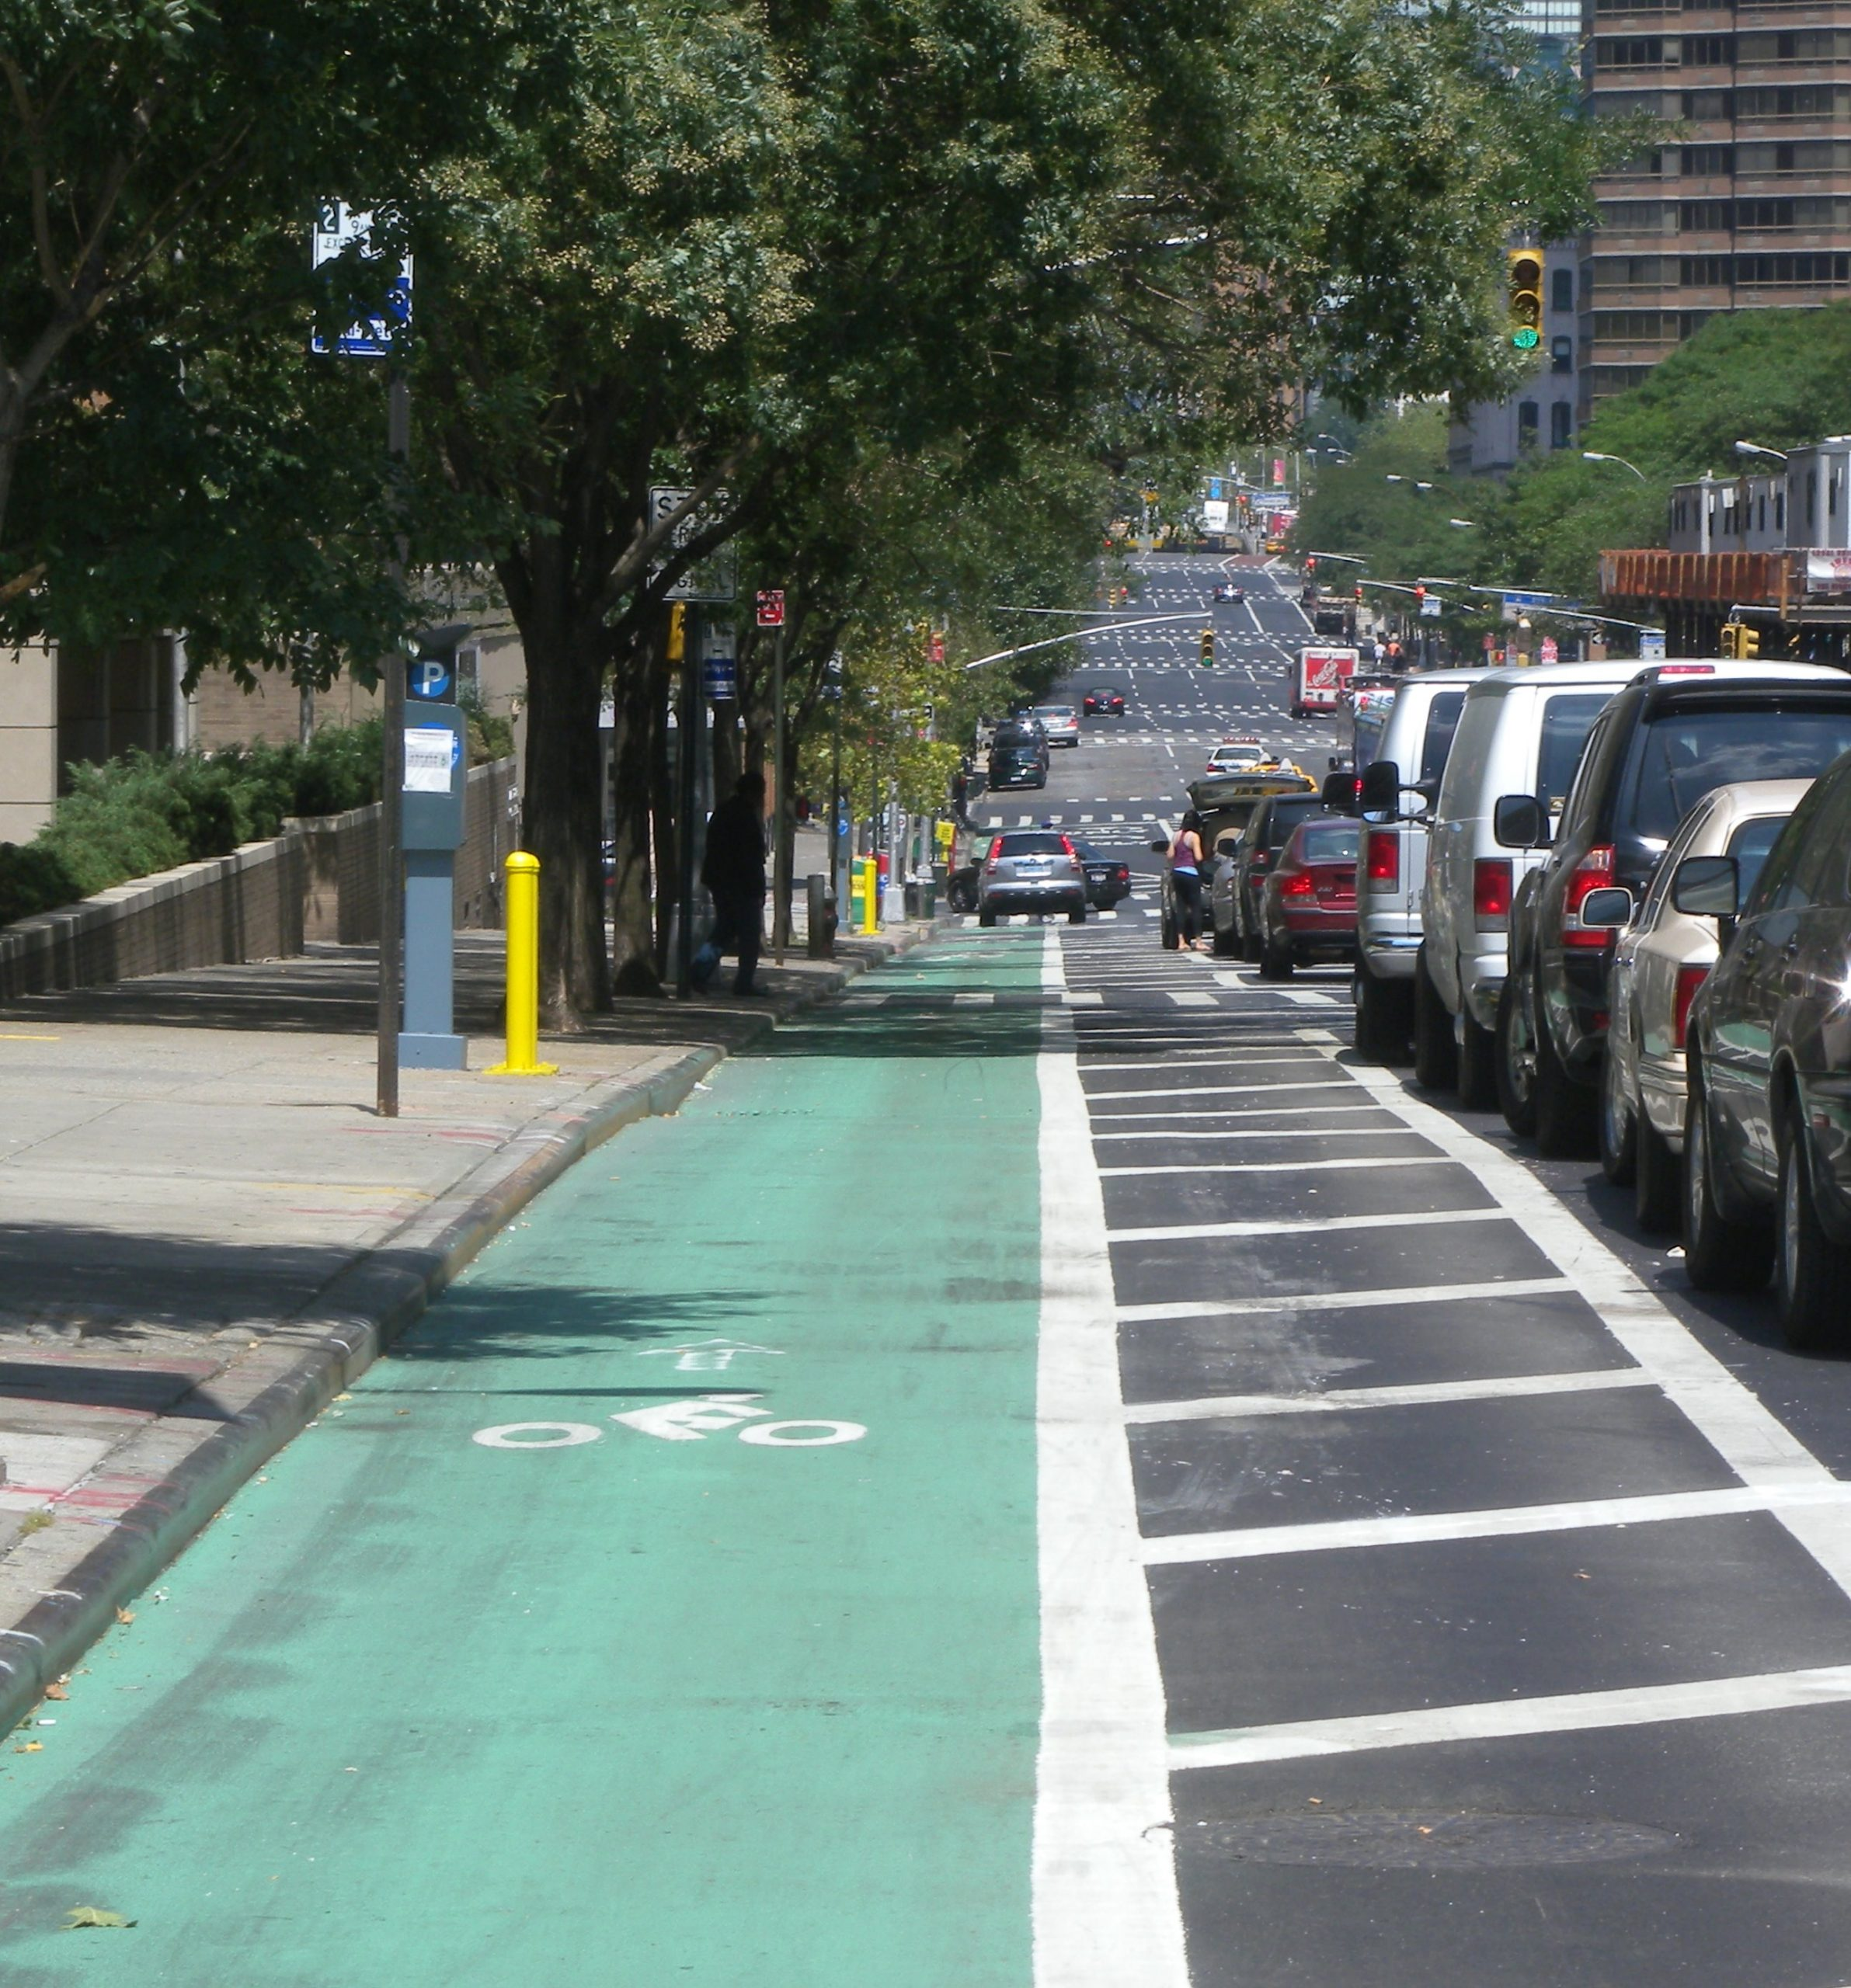 protected bike lane saves lives